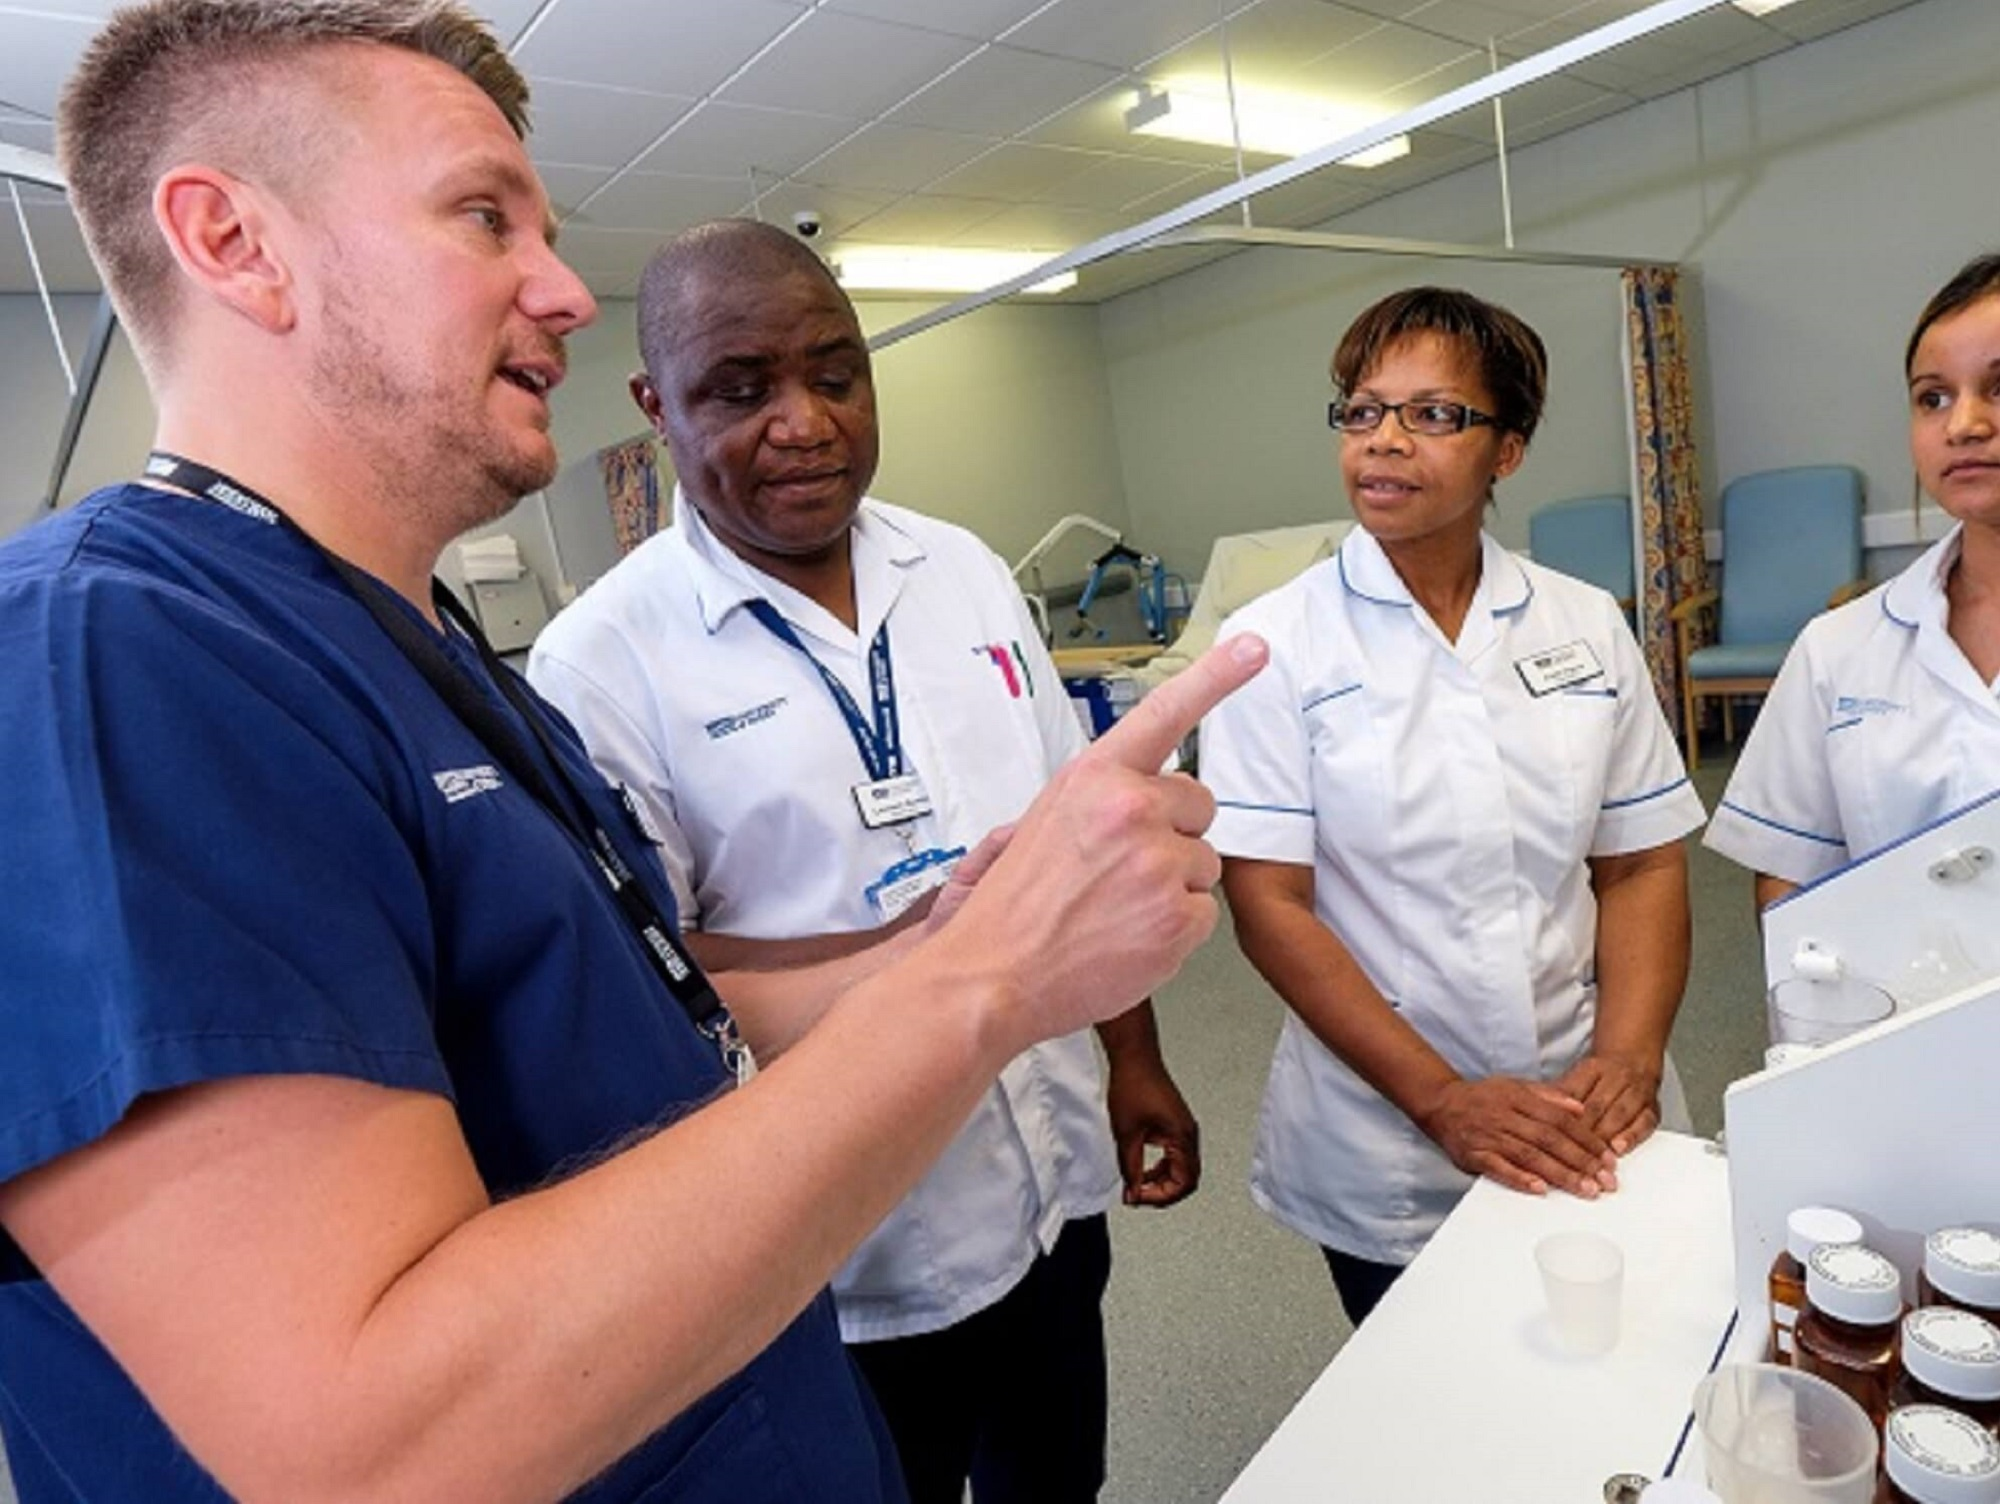 Nursing students receiving tuition in a ward from a senior healthcare staff member